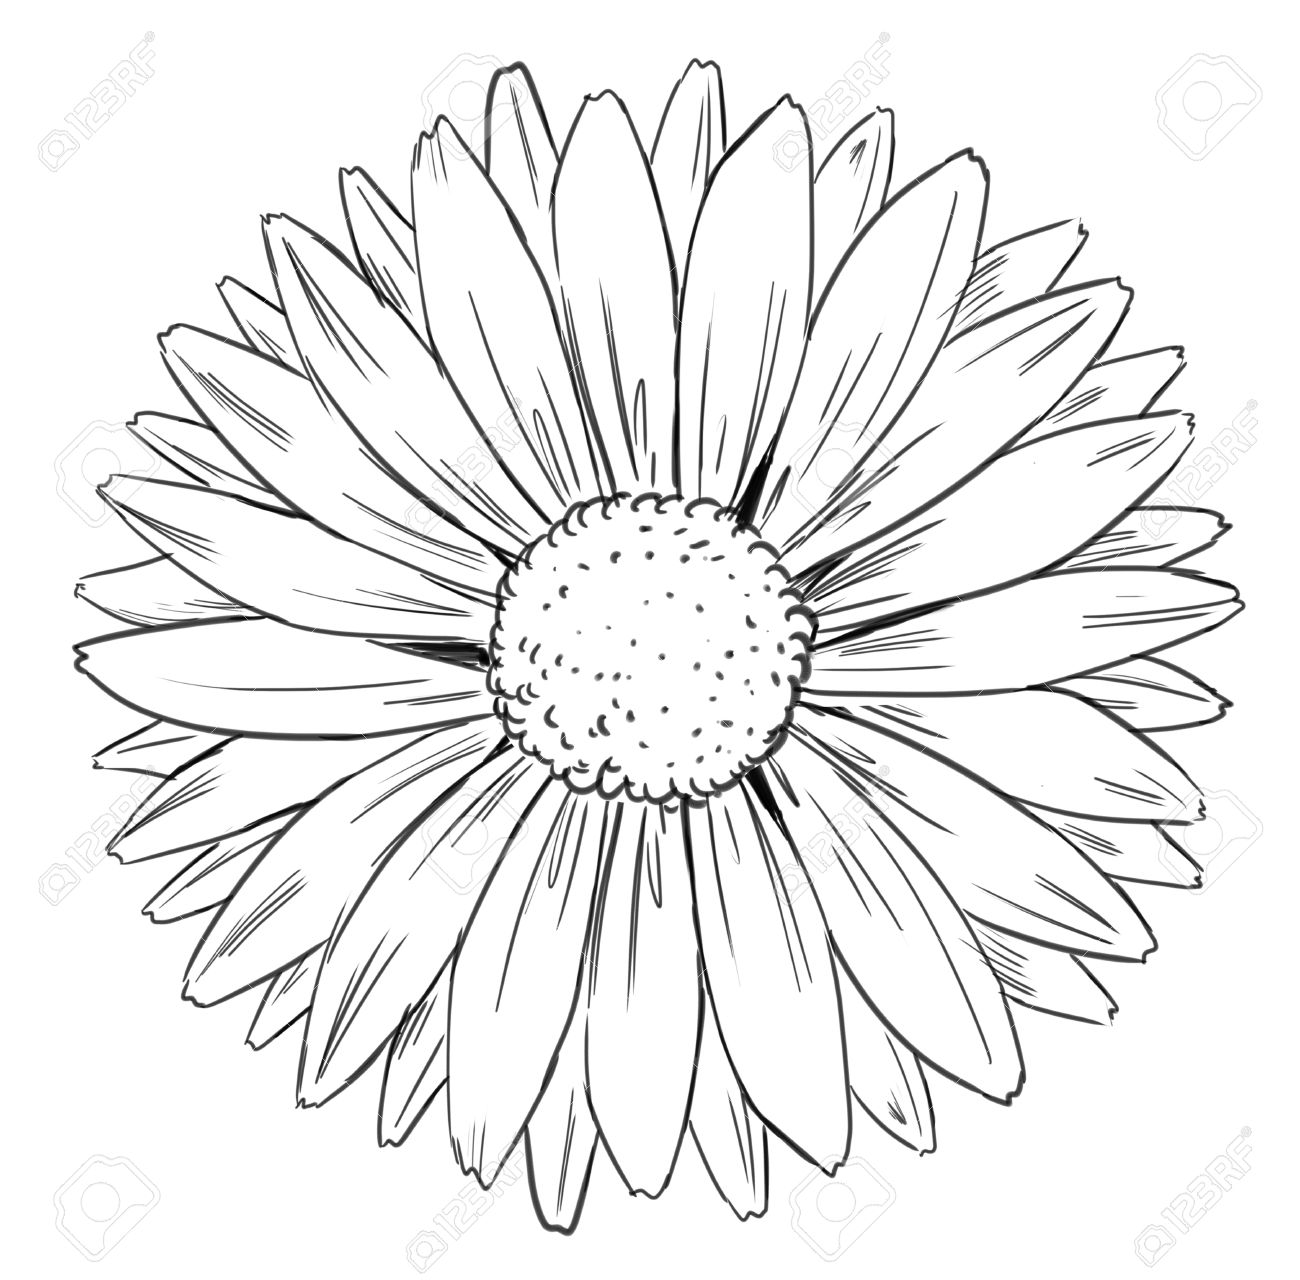 Daisy Drawing At Getdrawings Free For Personal Use Daisy